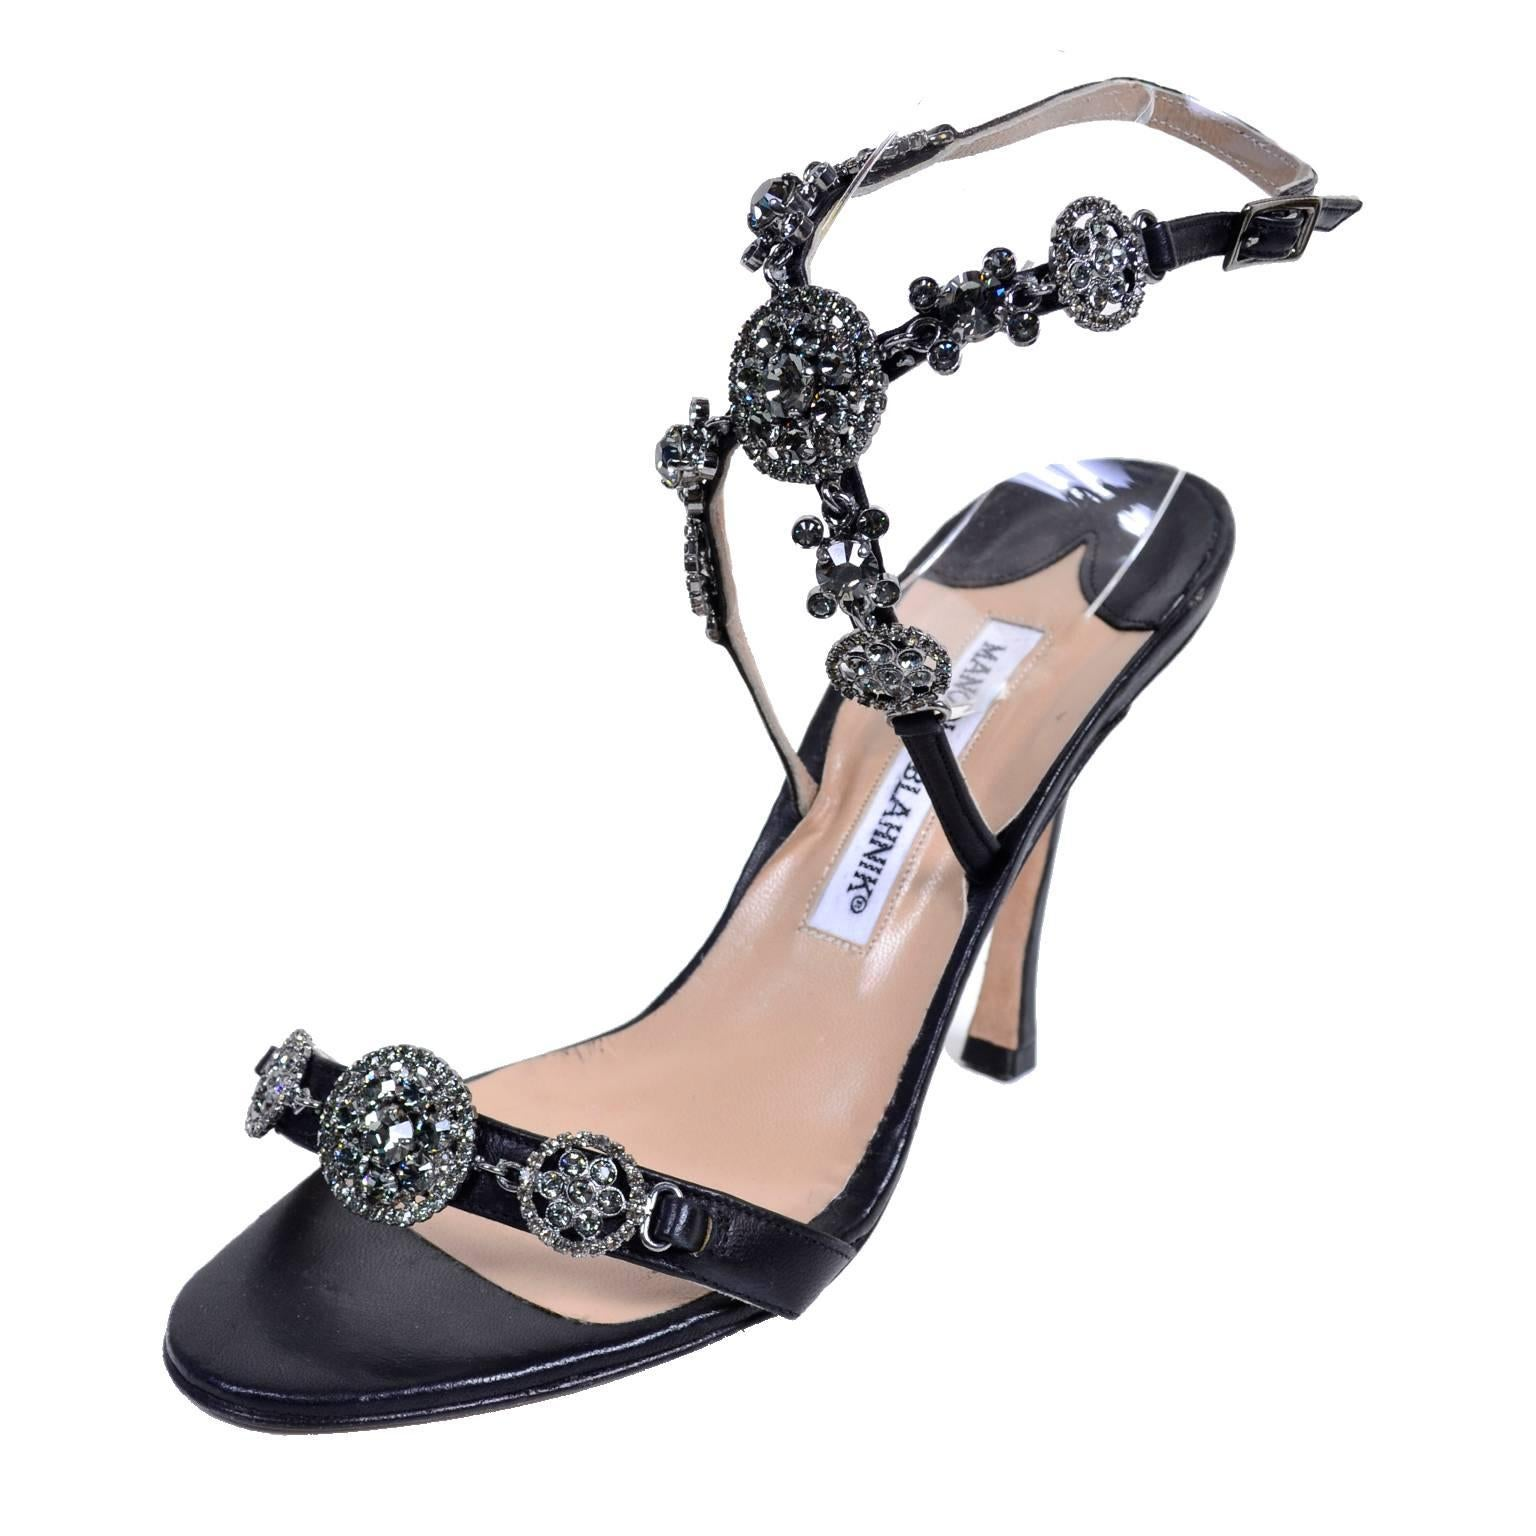 rare manolo blahnik shoes vintage ankle strap heels with crystals size 37